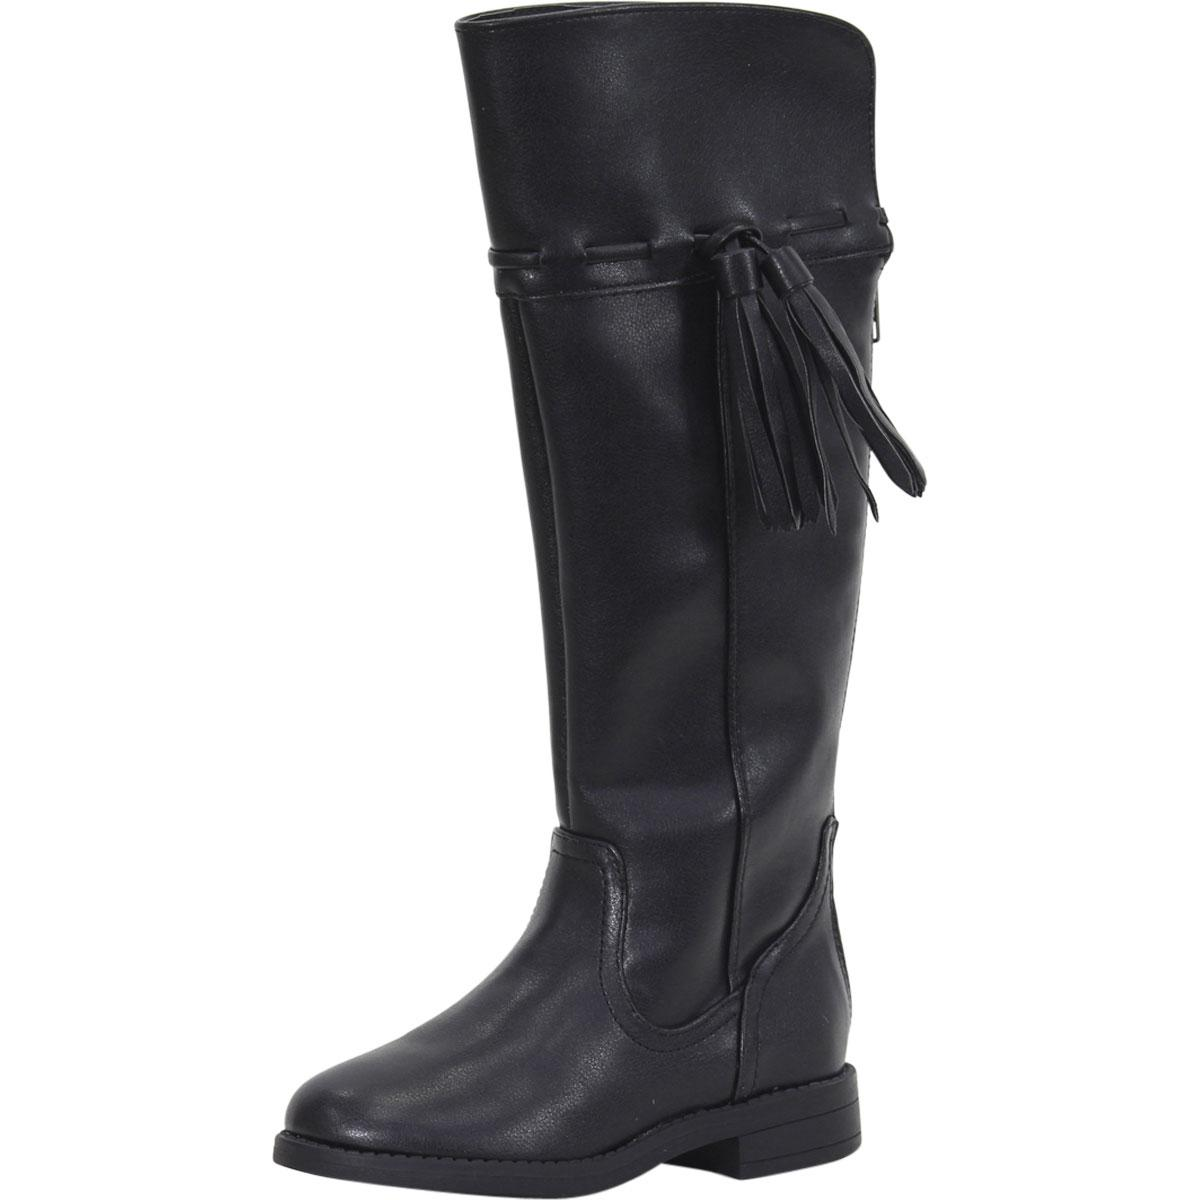 Image of Sugar Little/Big Girl's Cannoli Over The Knee Boots Shoes - Black - 12 M US Little Kid